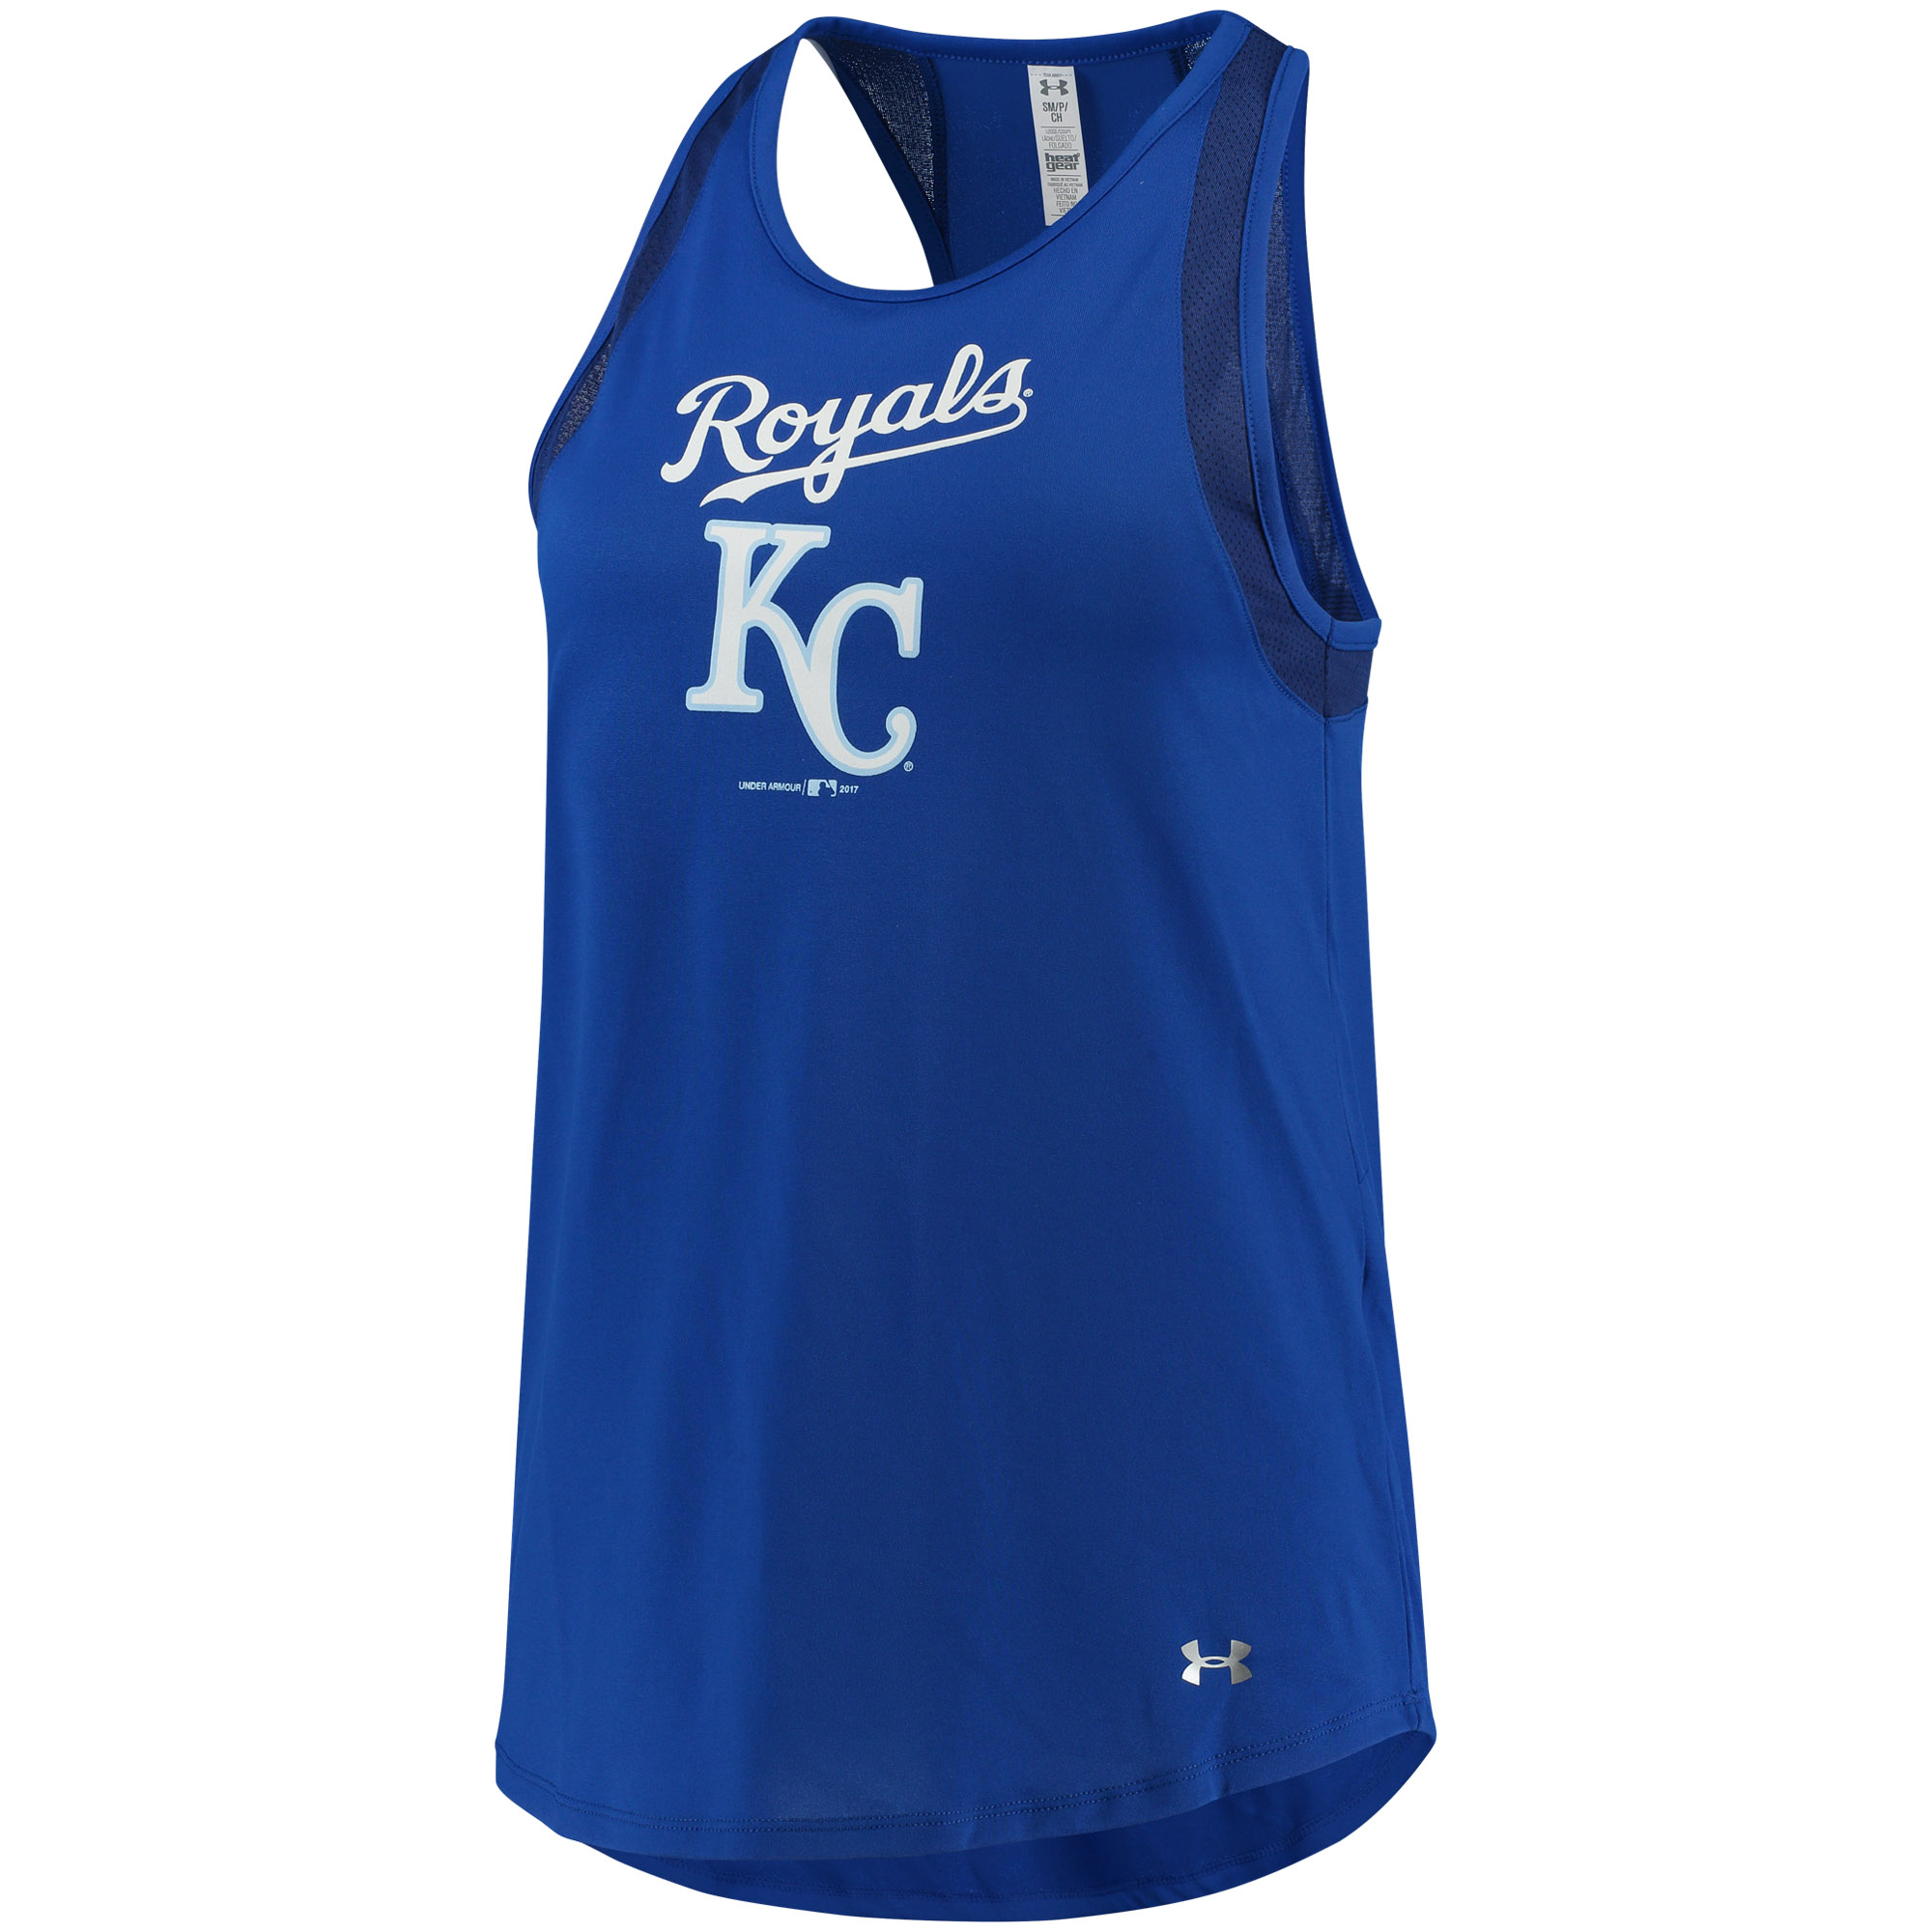 Women's Under Armour Royal Kansas City Royals Pointelle Mesh Performance Tank Top by Gear For Sports/Under Armour